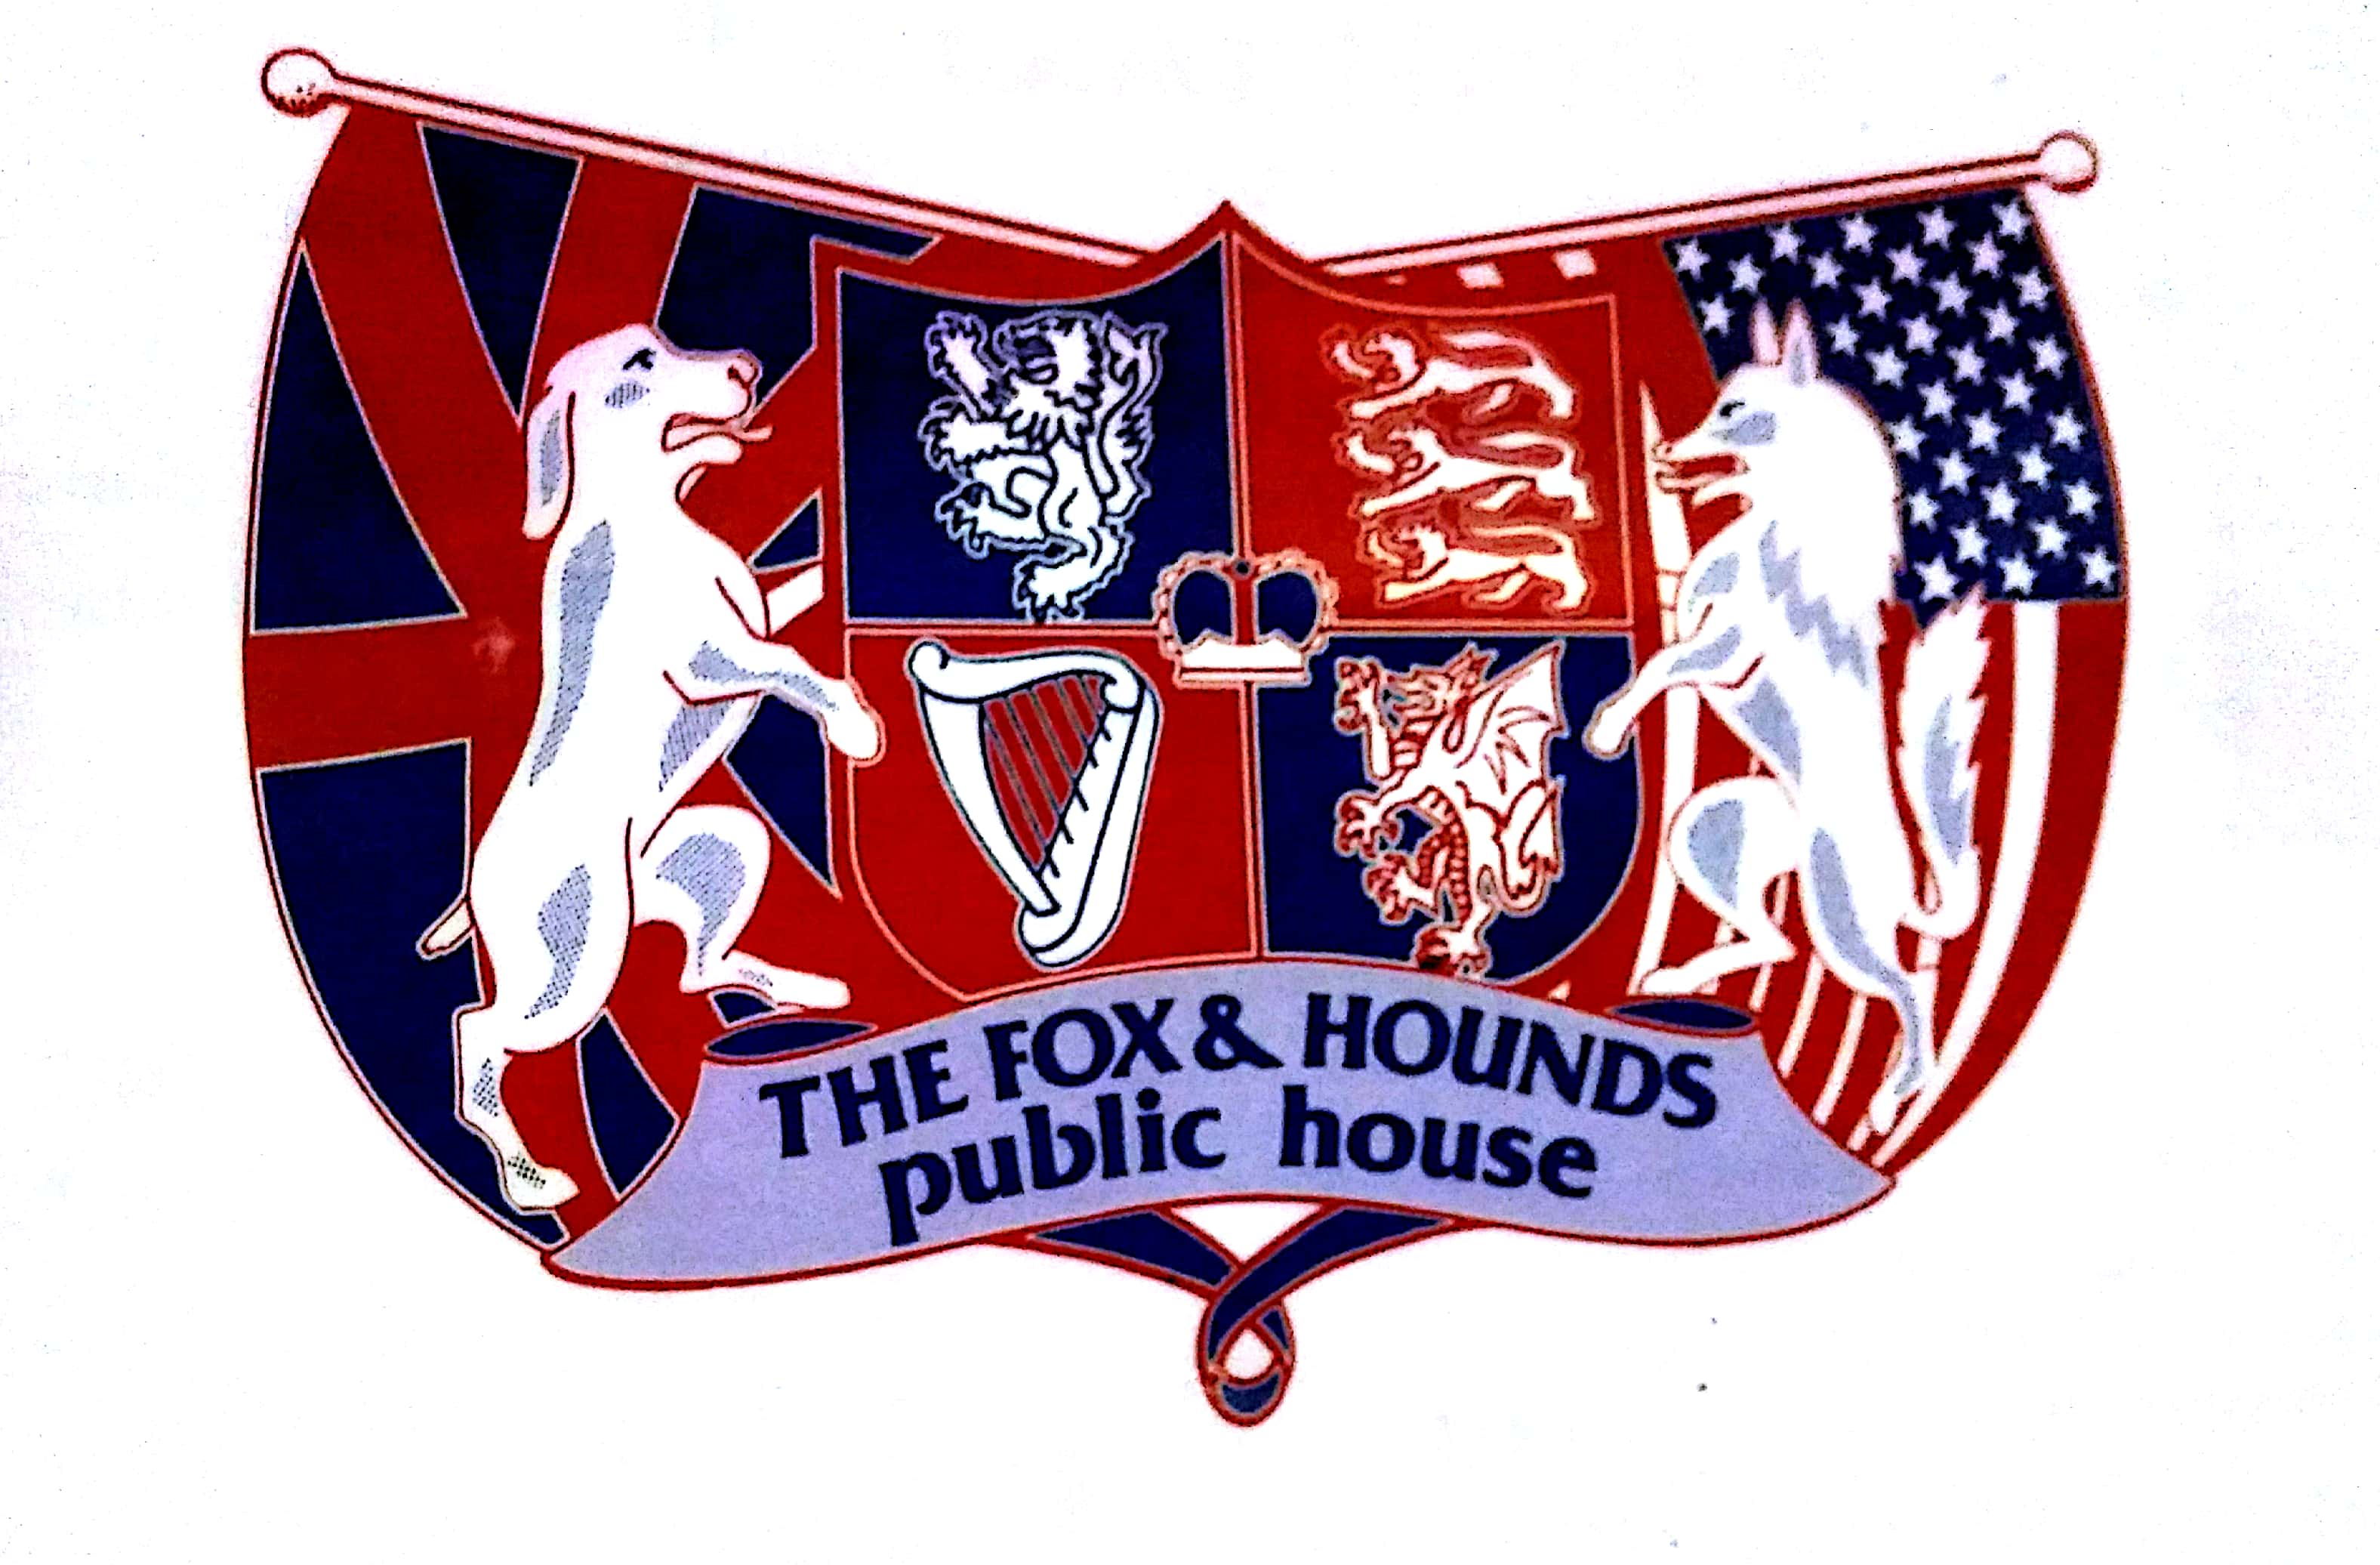 The Fox & Hounds Public House Home